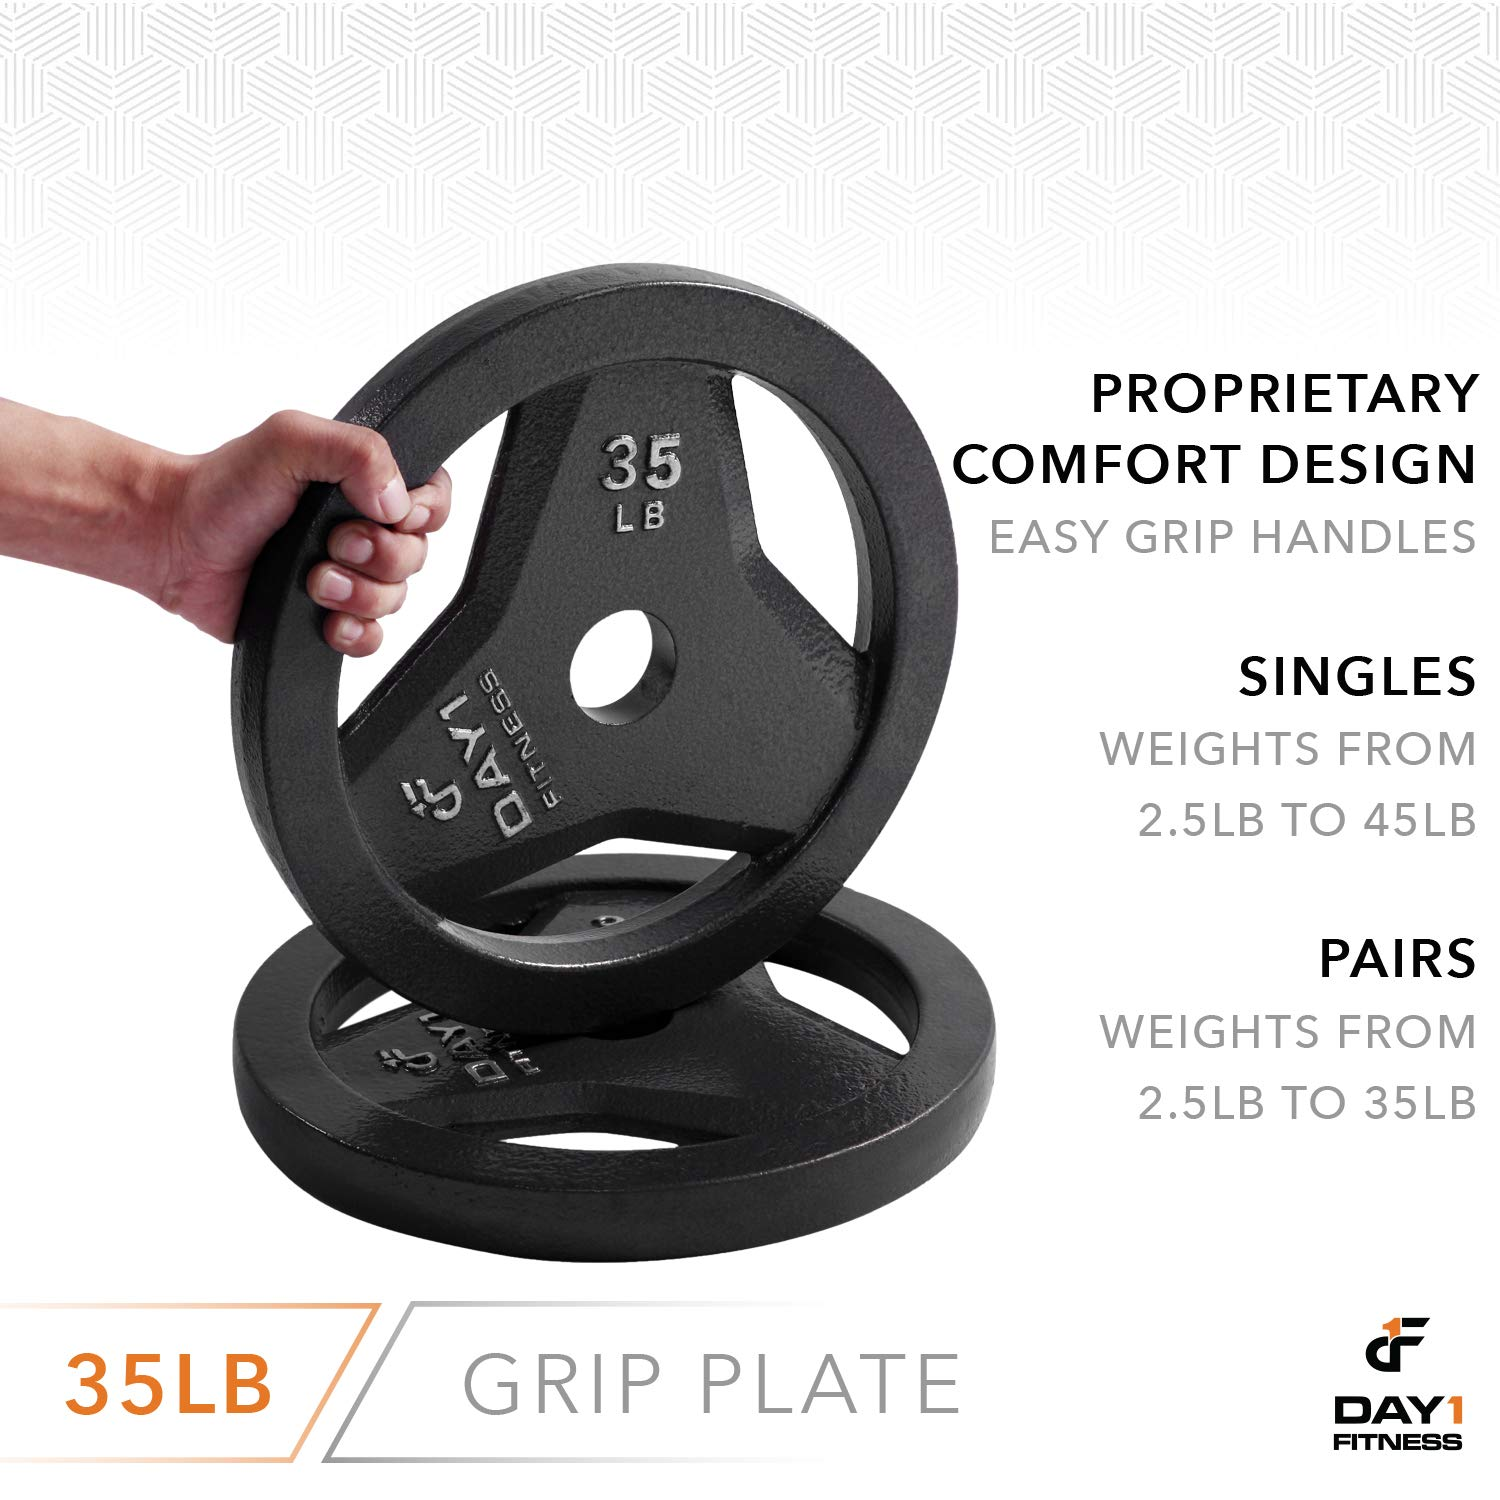 "Day 1 Fitness Cast Iron Olympic 2-Inch Grip Plate for Barbell, 35 Pound Single Plate Iron Grip Plates for Weightlifting, Crossfit - 2"" Weight Plate for Bodybuilding by Day 1 Fitness (Image #5)"